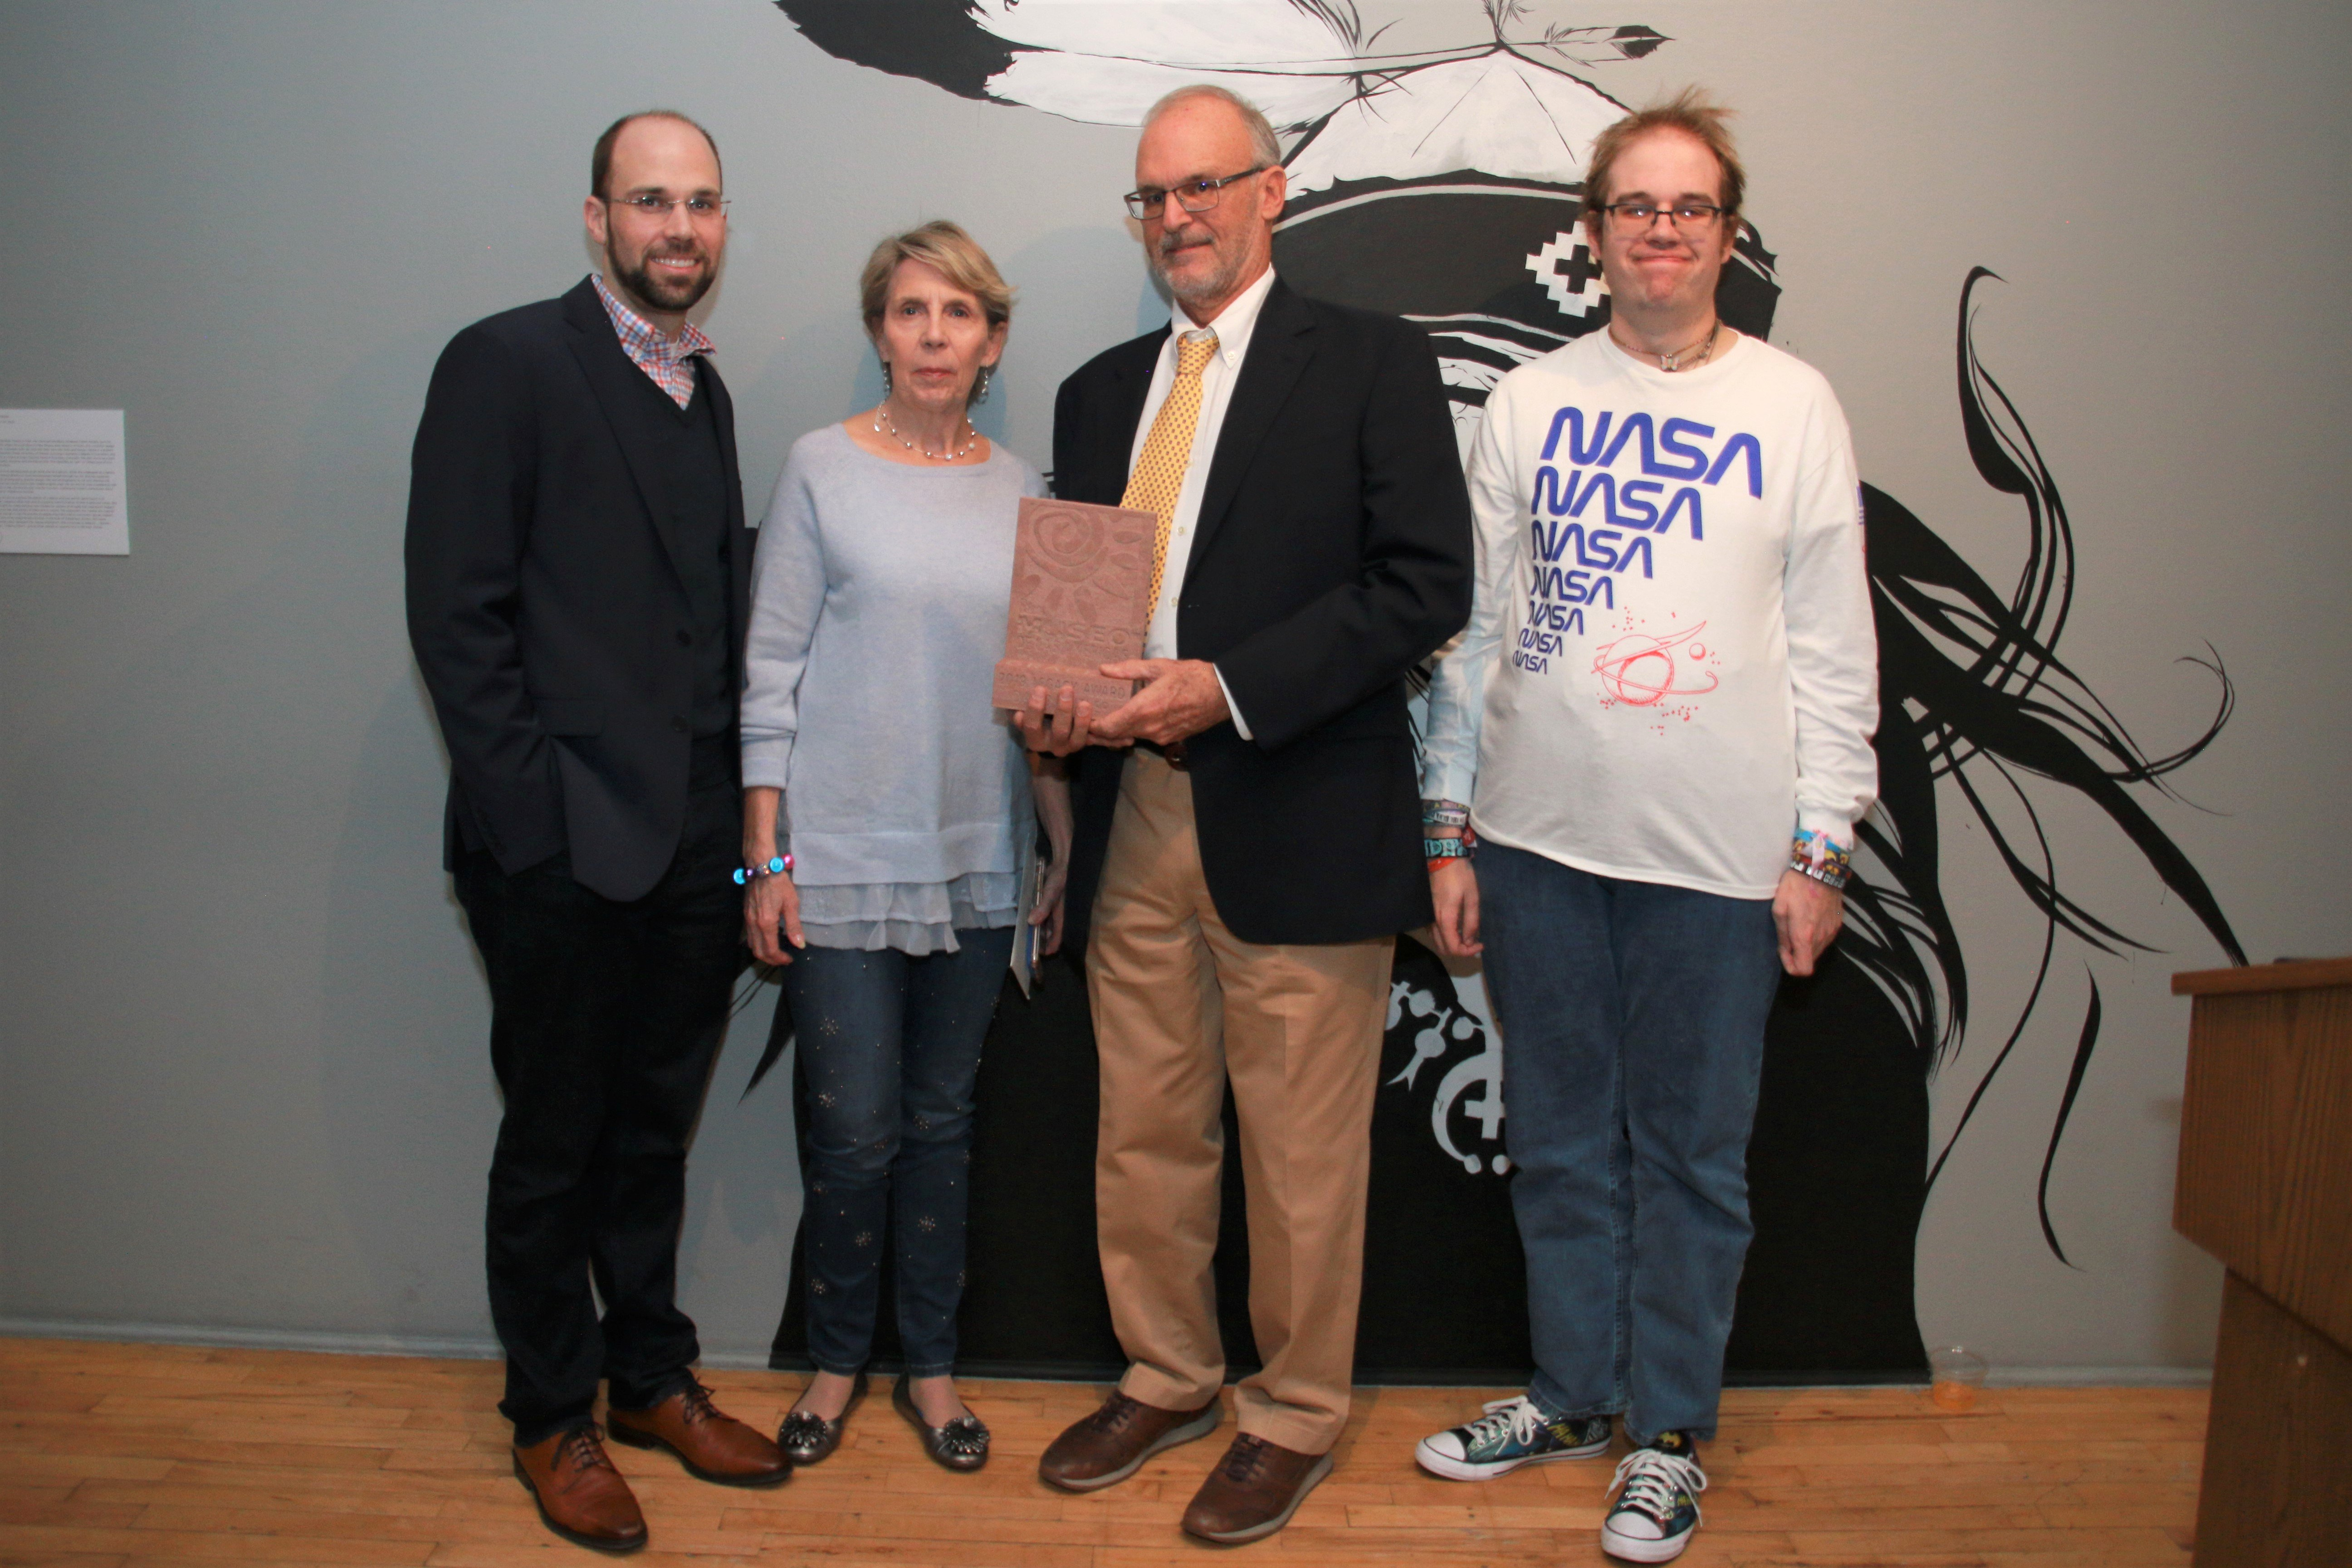 David Butler along with his wife and friends celebrate his 2019 Museo de las Americas Legacy Award. Photo by